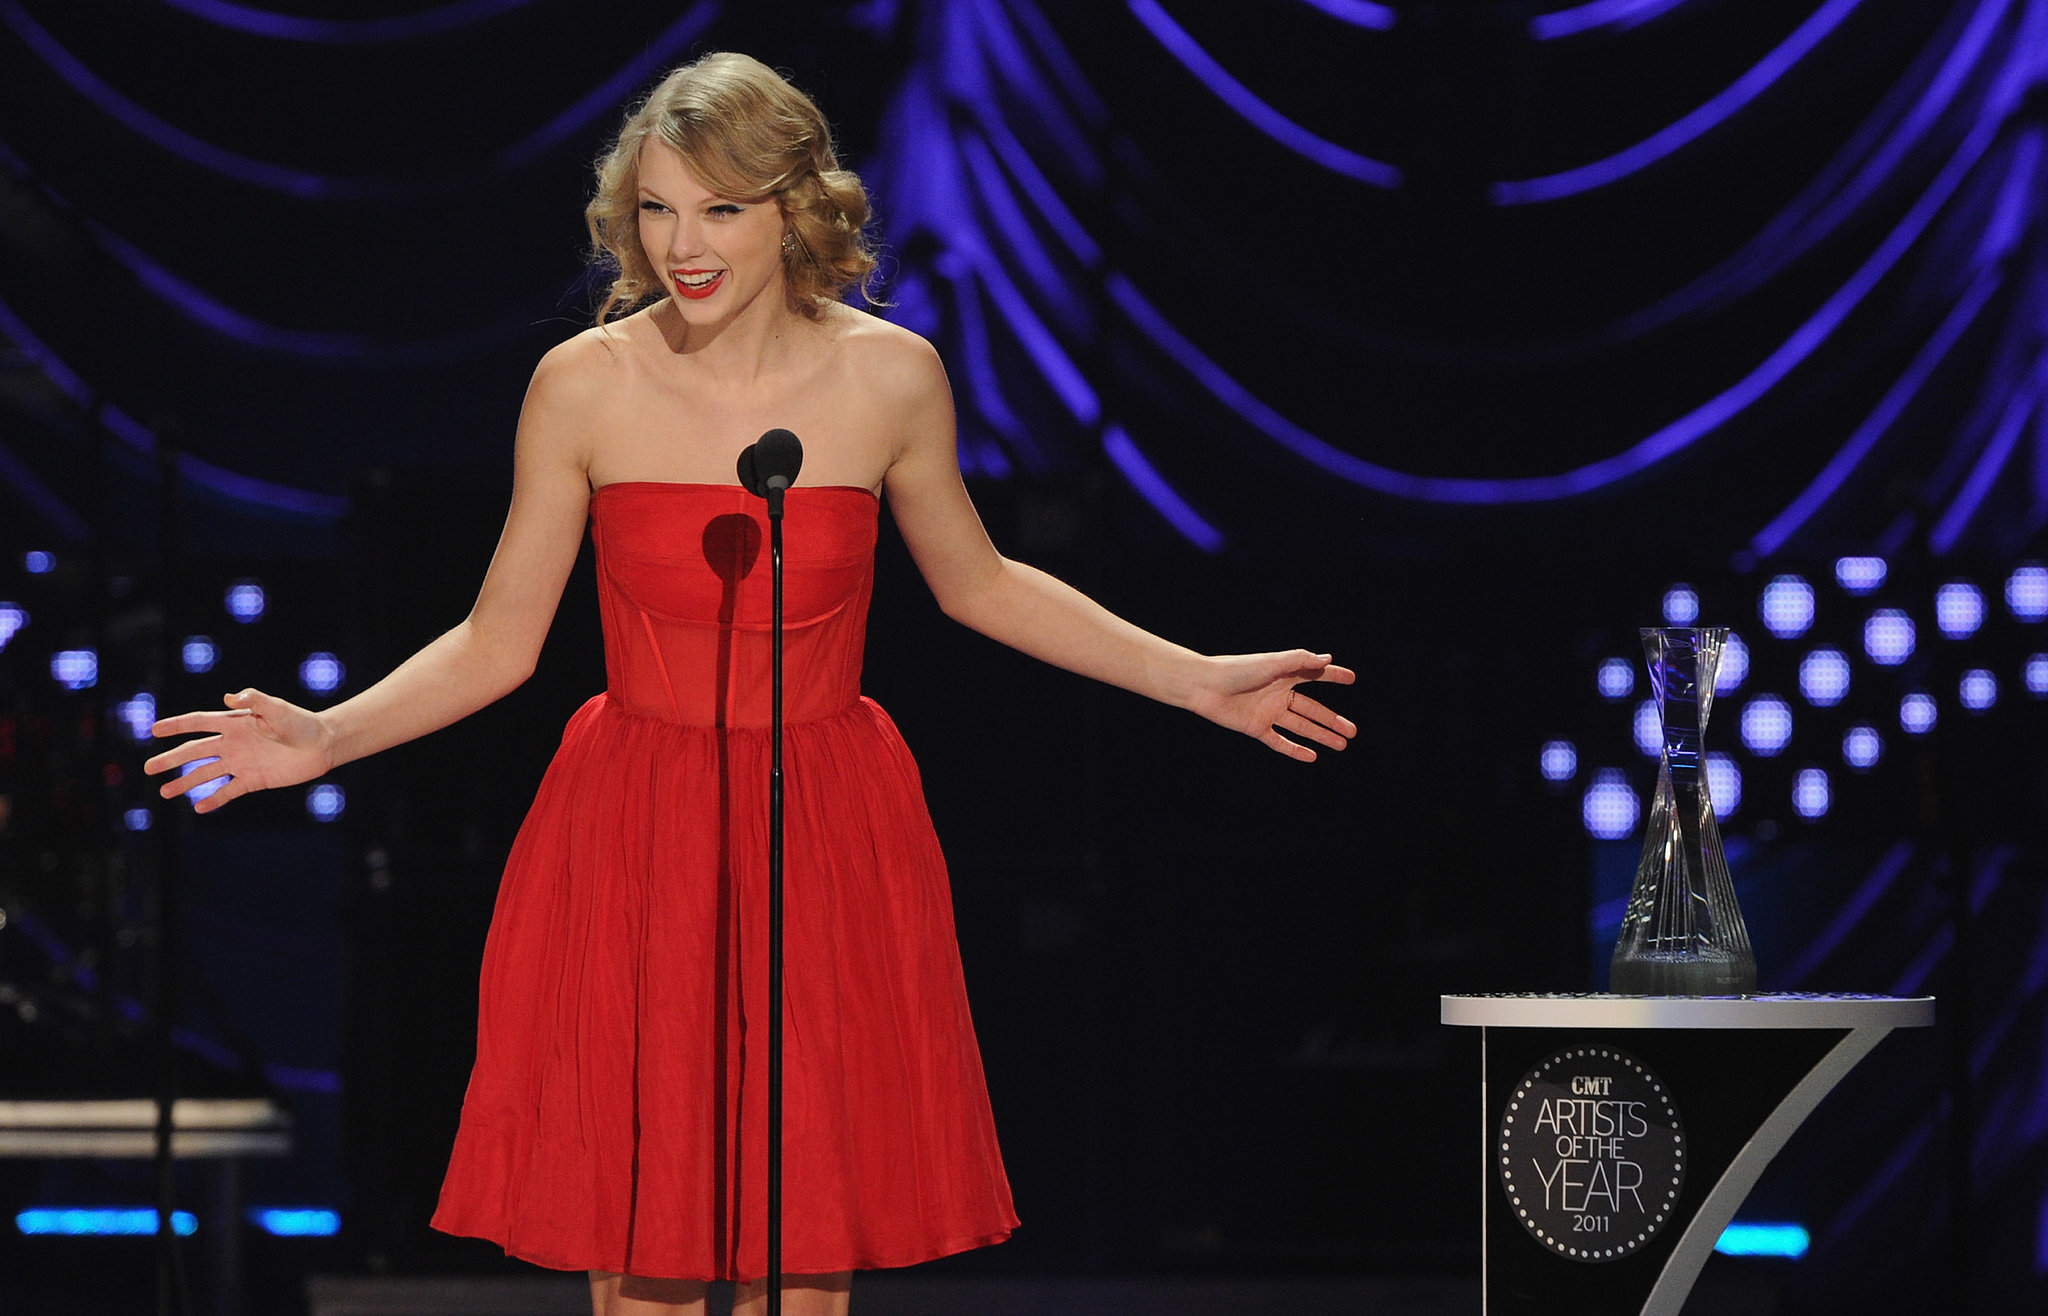 Taylor Swift was honored at the CMT Artists of the Year event in November 2011.